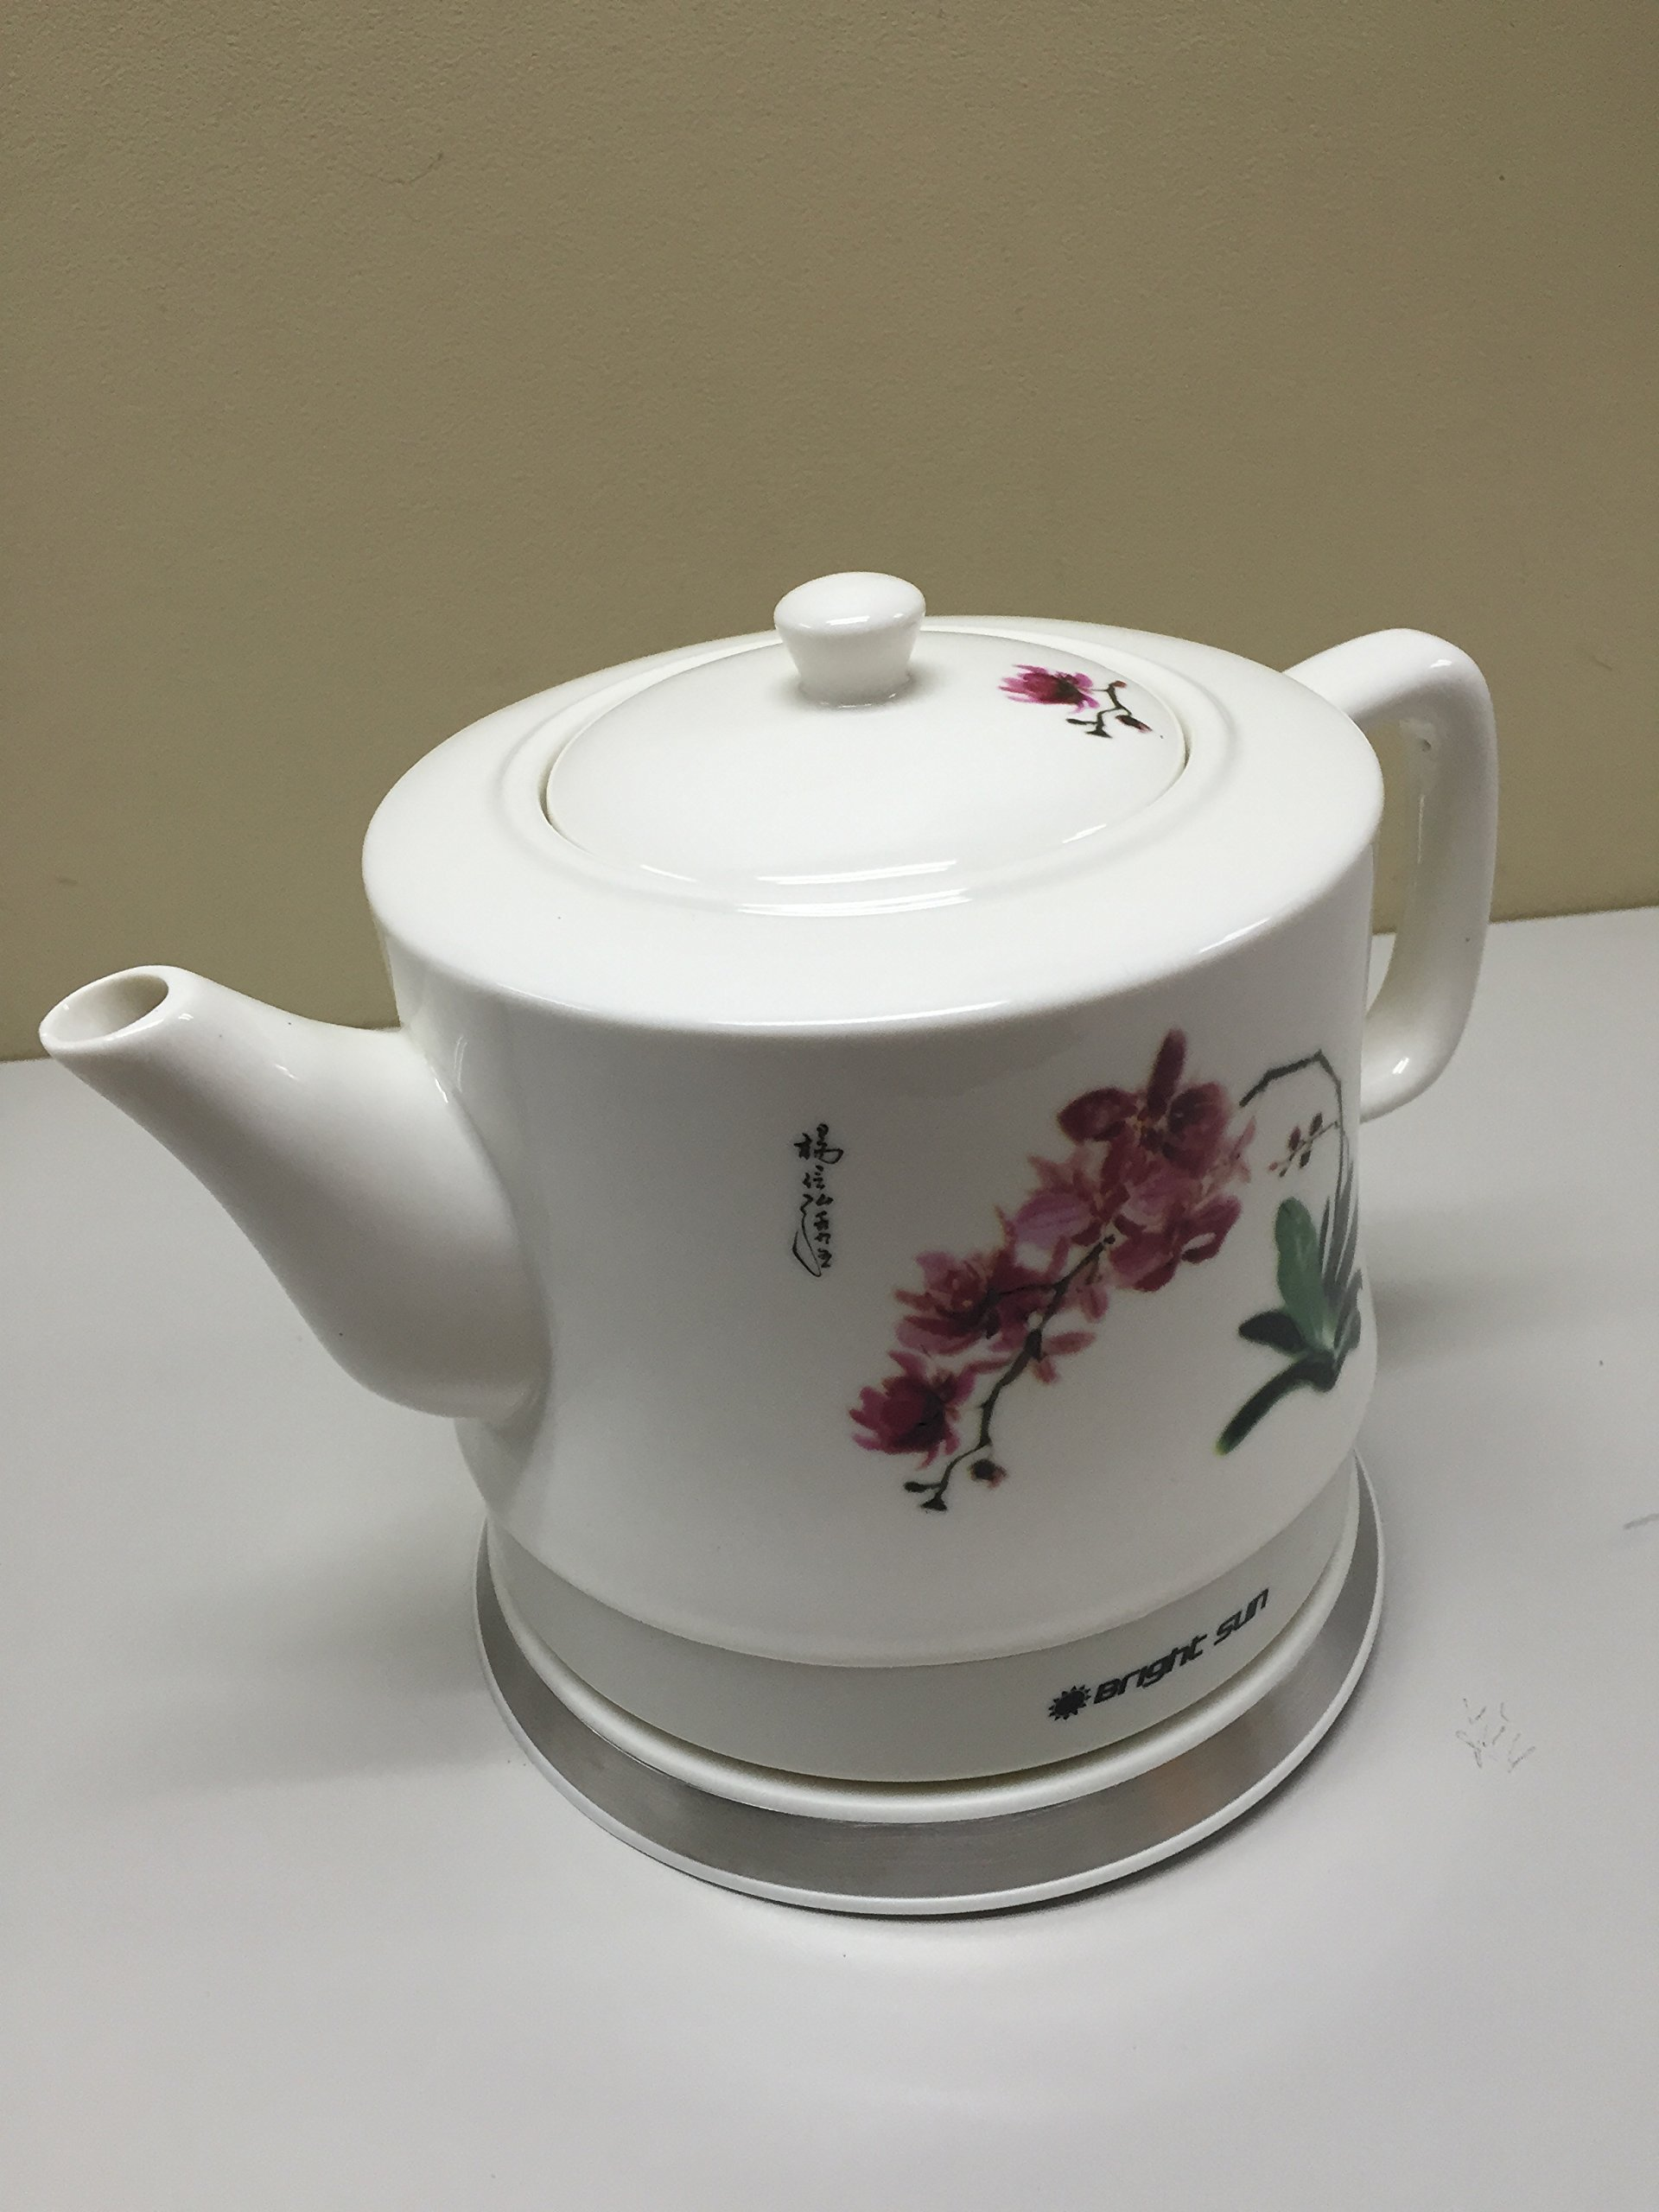 FixtureDisplays Ceramic Electric Kettle with Red White Polka Dots 13581!